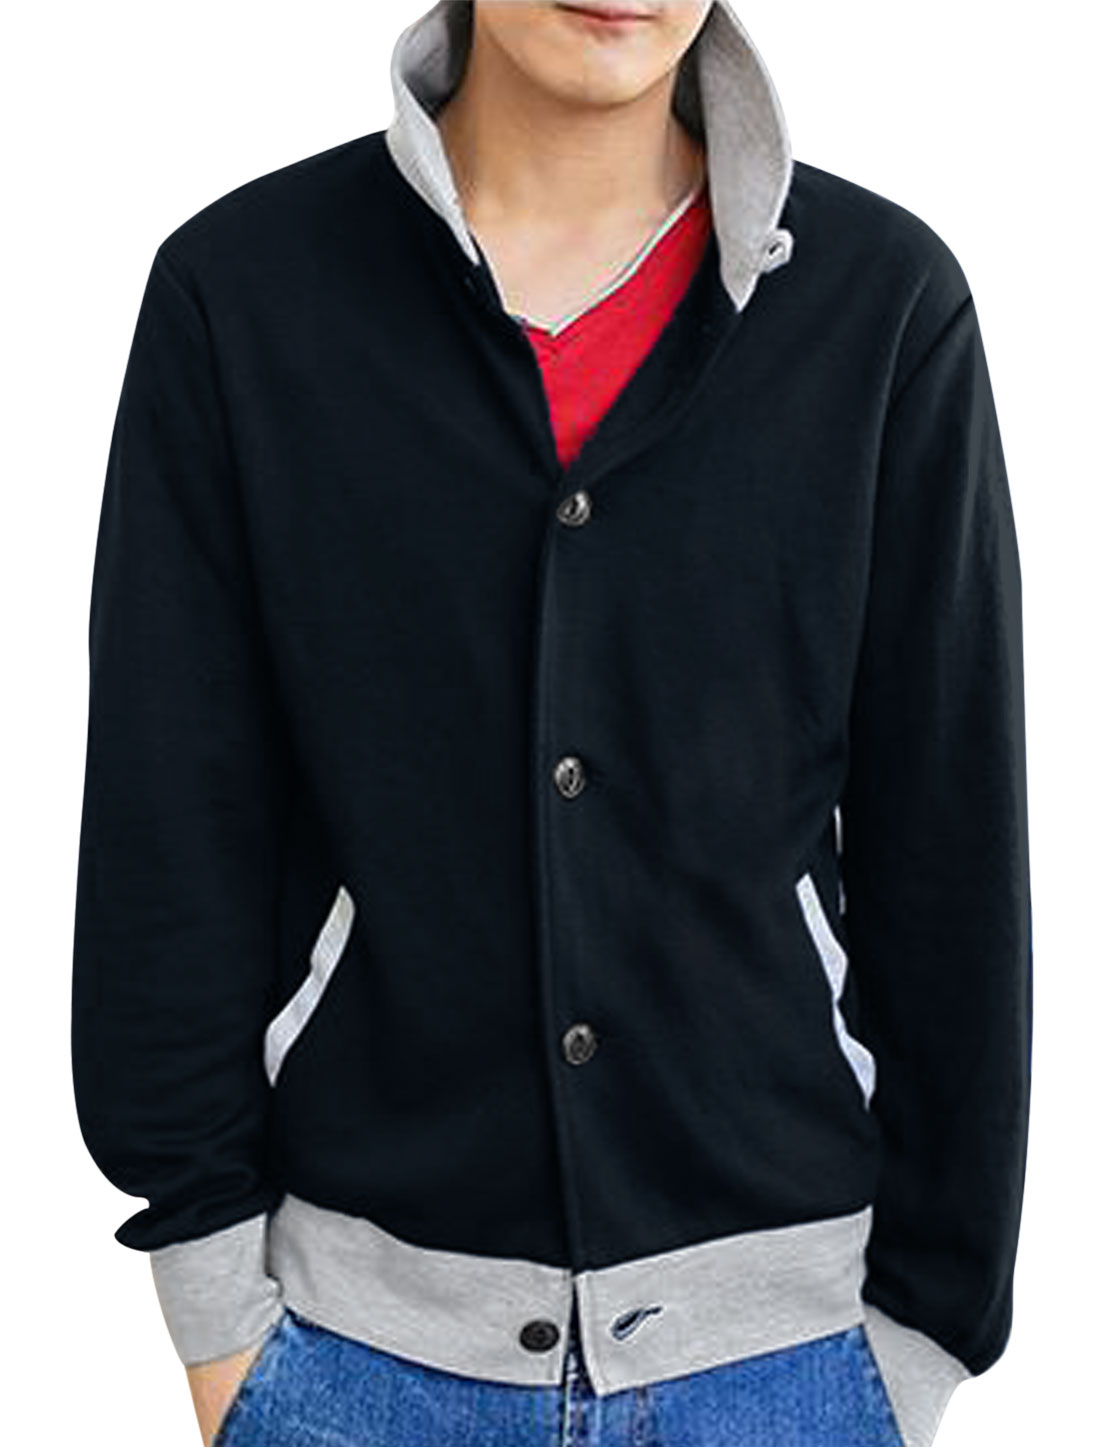 Men Turndown Collar Elbow Patches Contrast Color Casual Jacket Navy Blue M